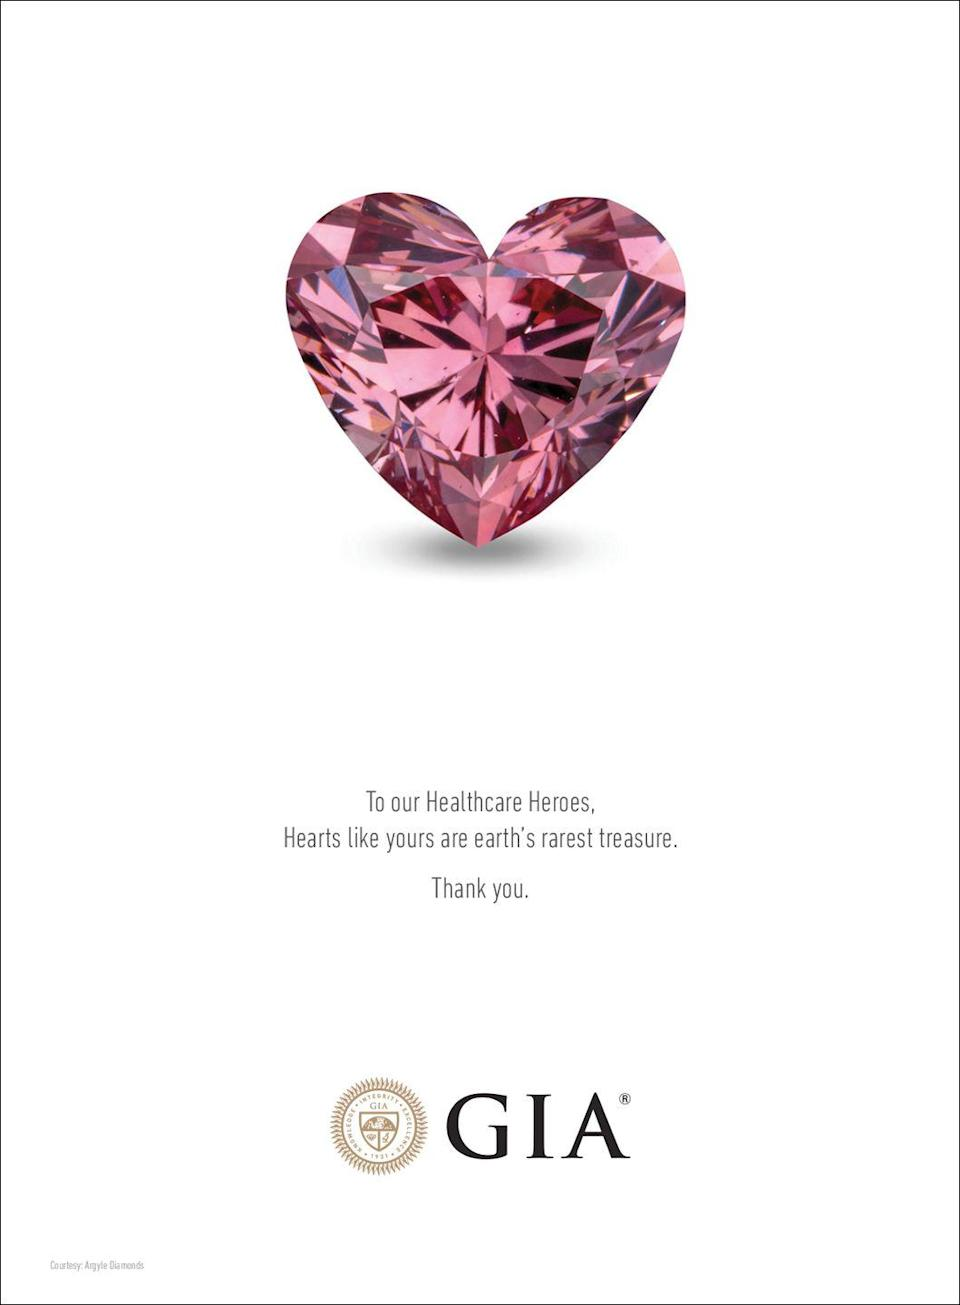 <p>To our Healthcare Heroes,</p><p>Hearts like yours are earth's rarest treasure.</p><p>Thank you.</p>